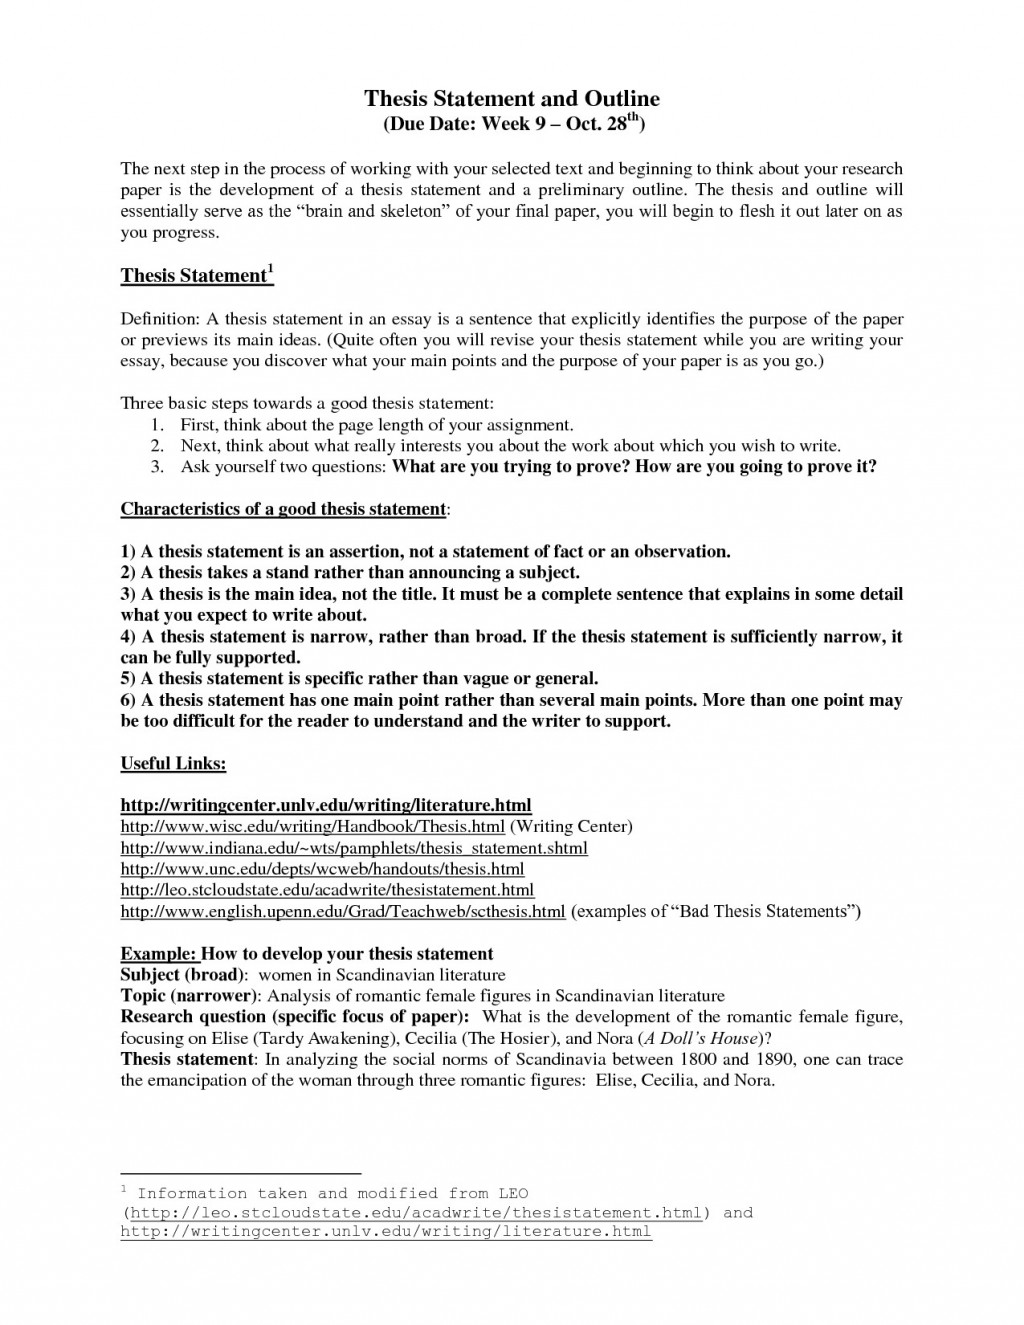 012 Essay Example Steps To Writing An Argumentative Thesis Statements For Essays Valid Statement Examples Within Marvelous What Is The Second Step In Prewriting Process Easy Write Flow Chart Shows Some Of Large